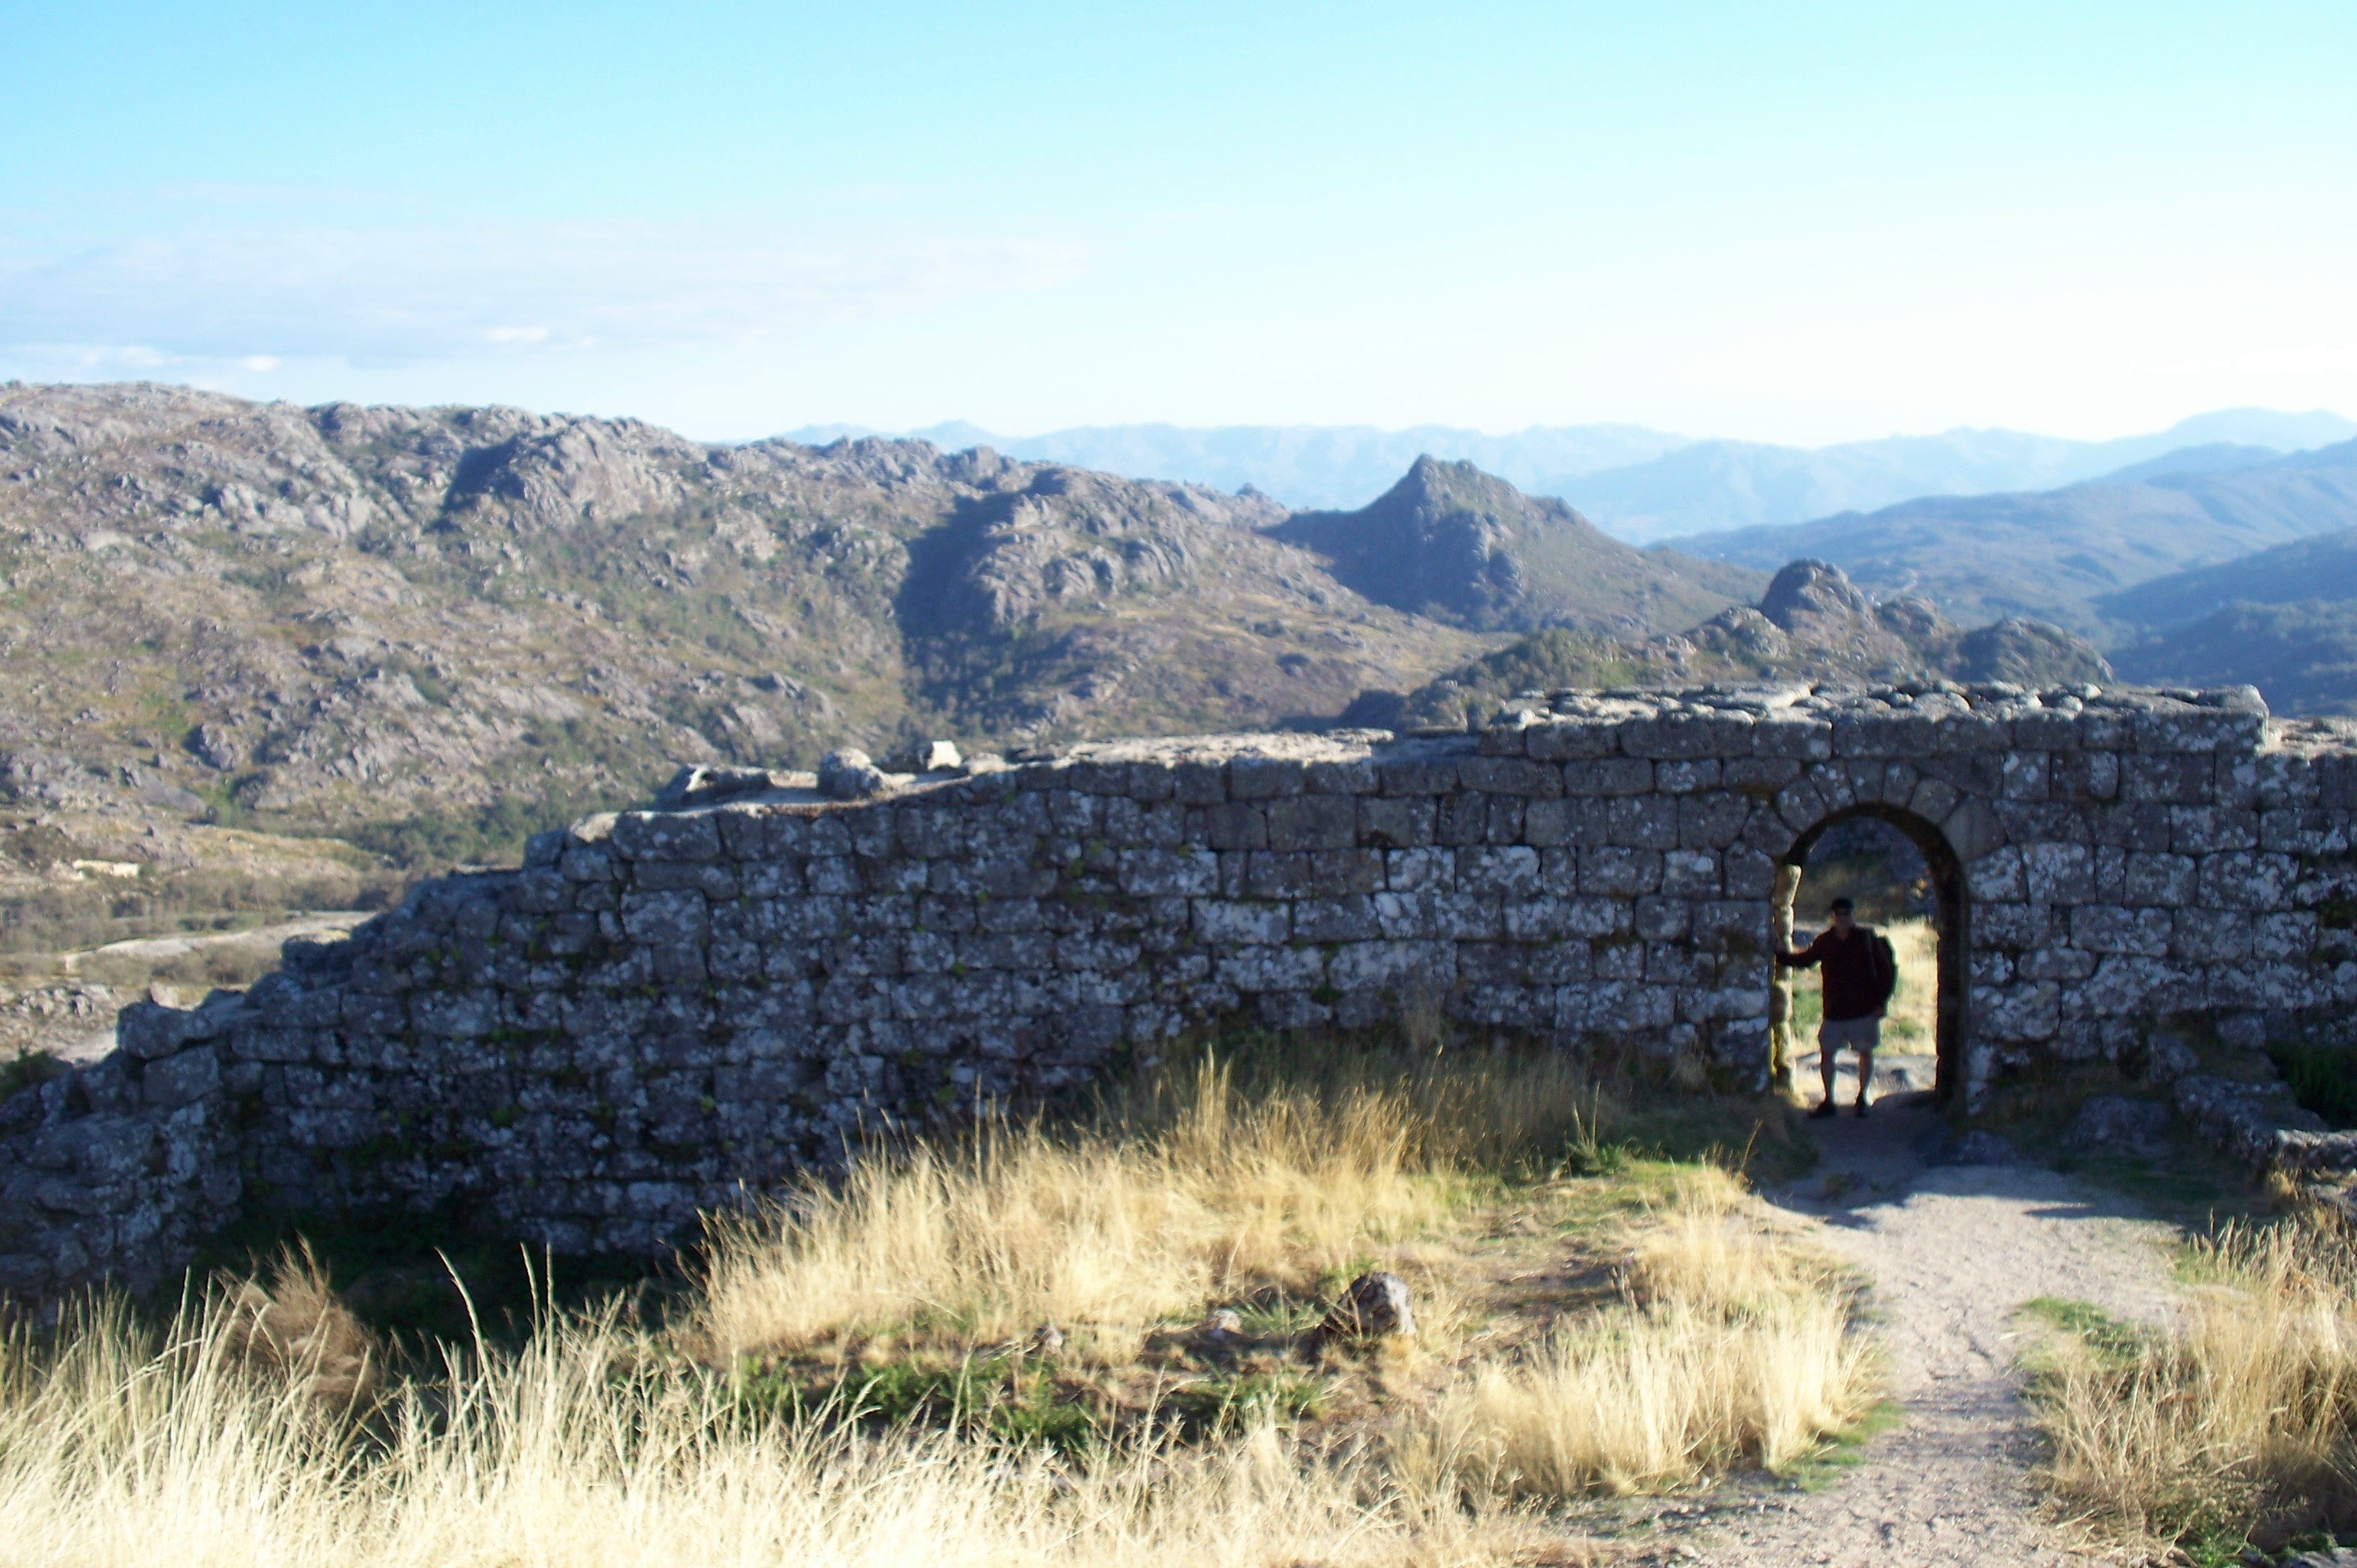 Though still on the frontier with Spain, the castle ruins above Castro Laboreiro no longer serve as border fortress.